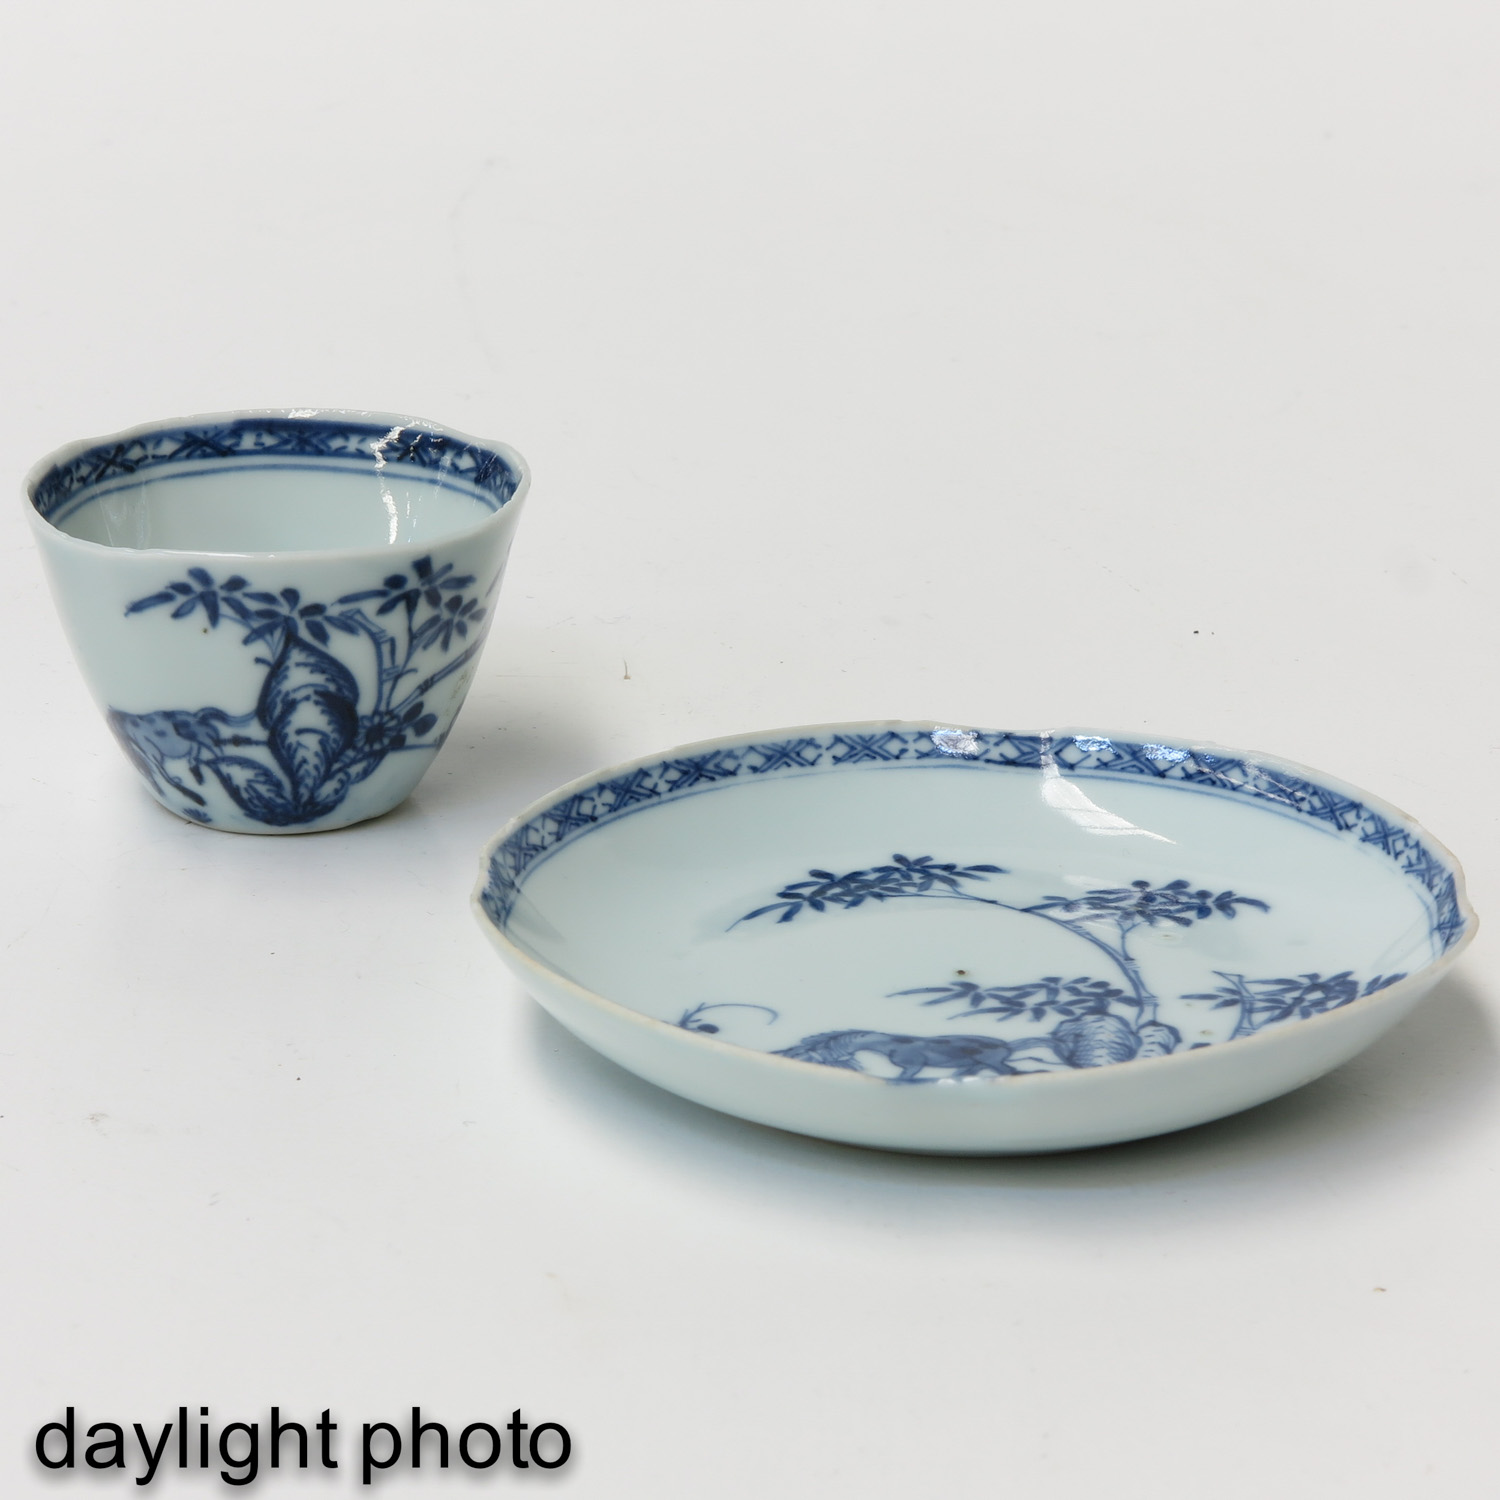 A Collection of 3 Cups and Saucers - Image 7 of 9